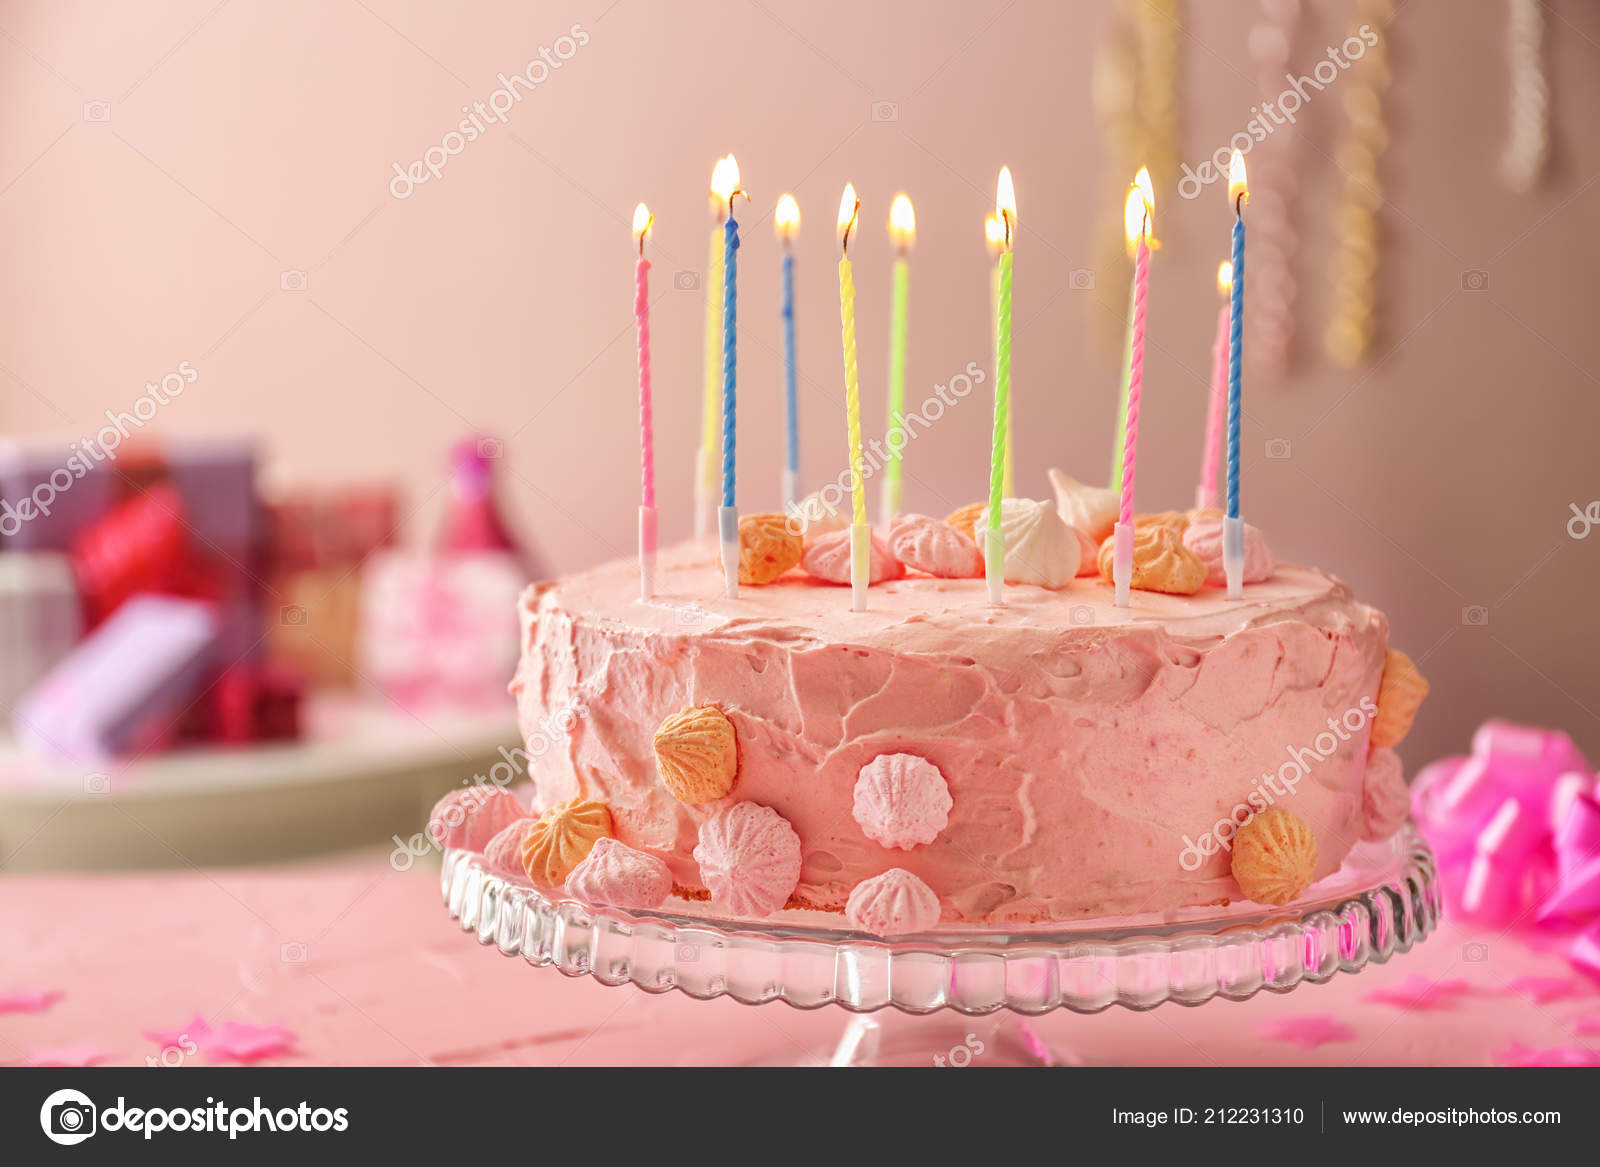 Incredible Pictures Frozen Birthday Cakes Beautiful Tasty Birthday Cake Personalised Birthday Cards Veneteletsinfo